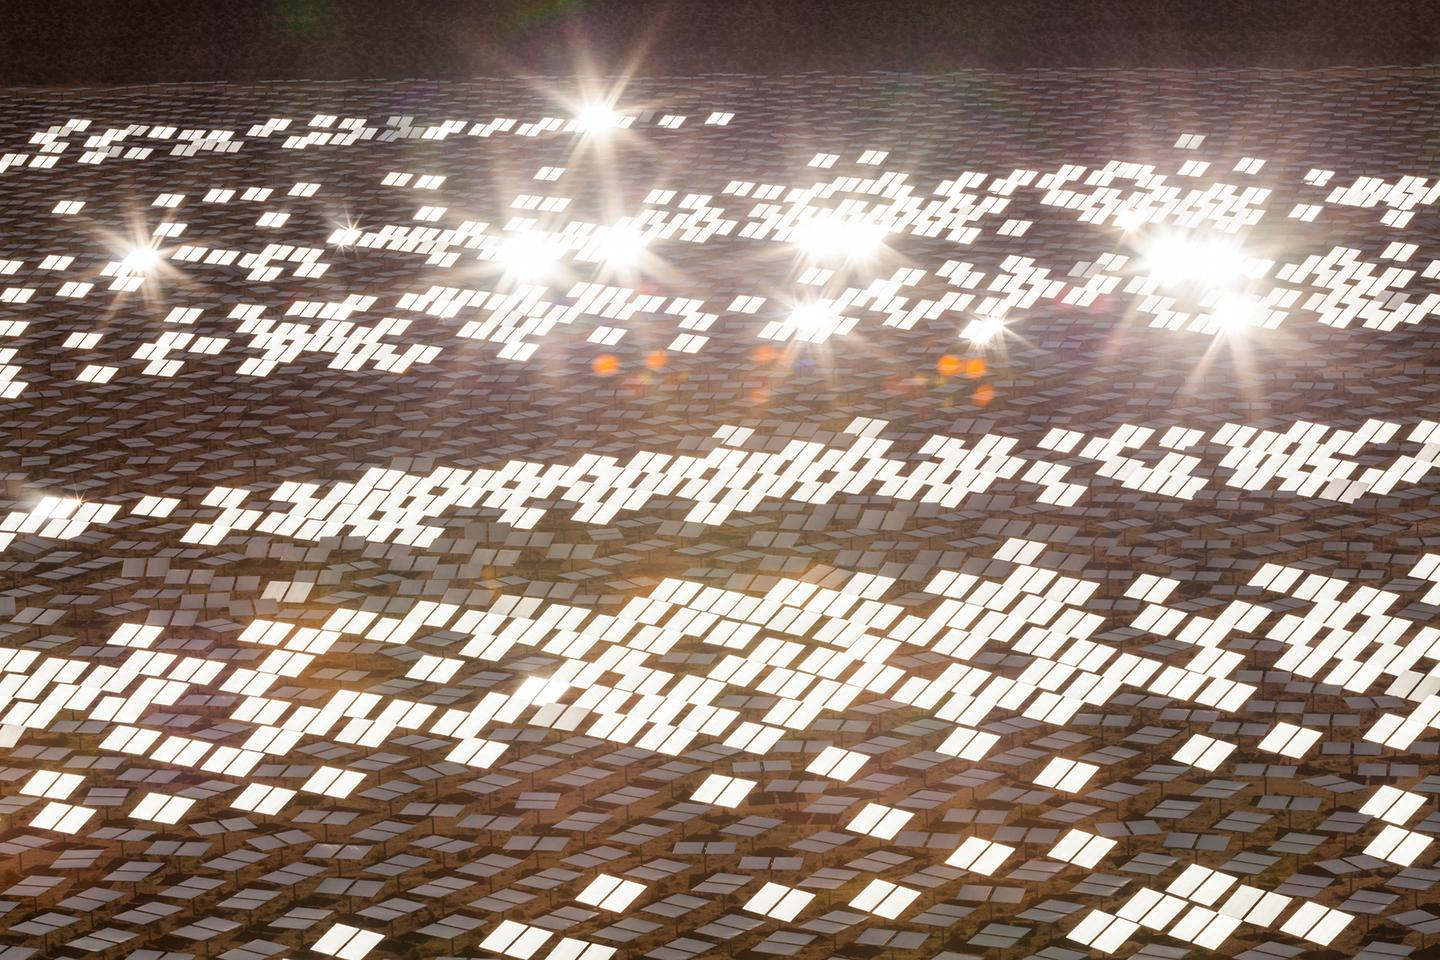 Funded by NRG, Google, and BrightSource Energy, Ivanpah is expected to generate enough electricity each year to power 140,000 homes